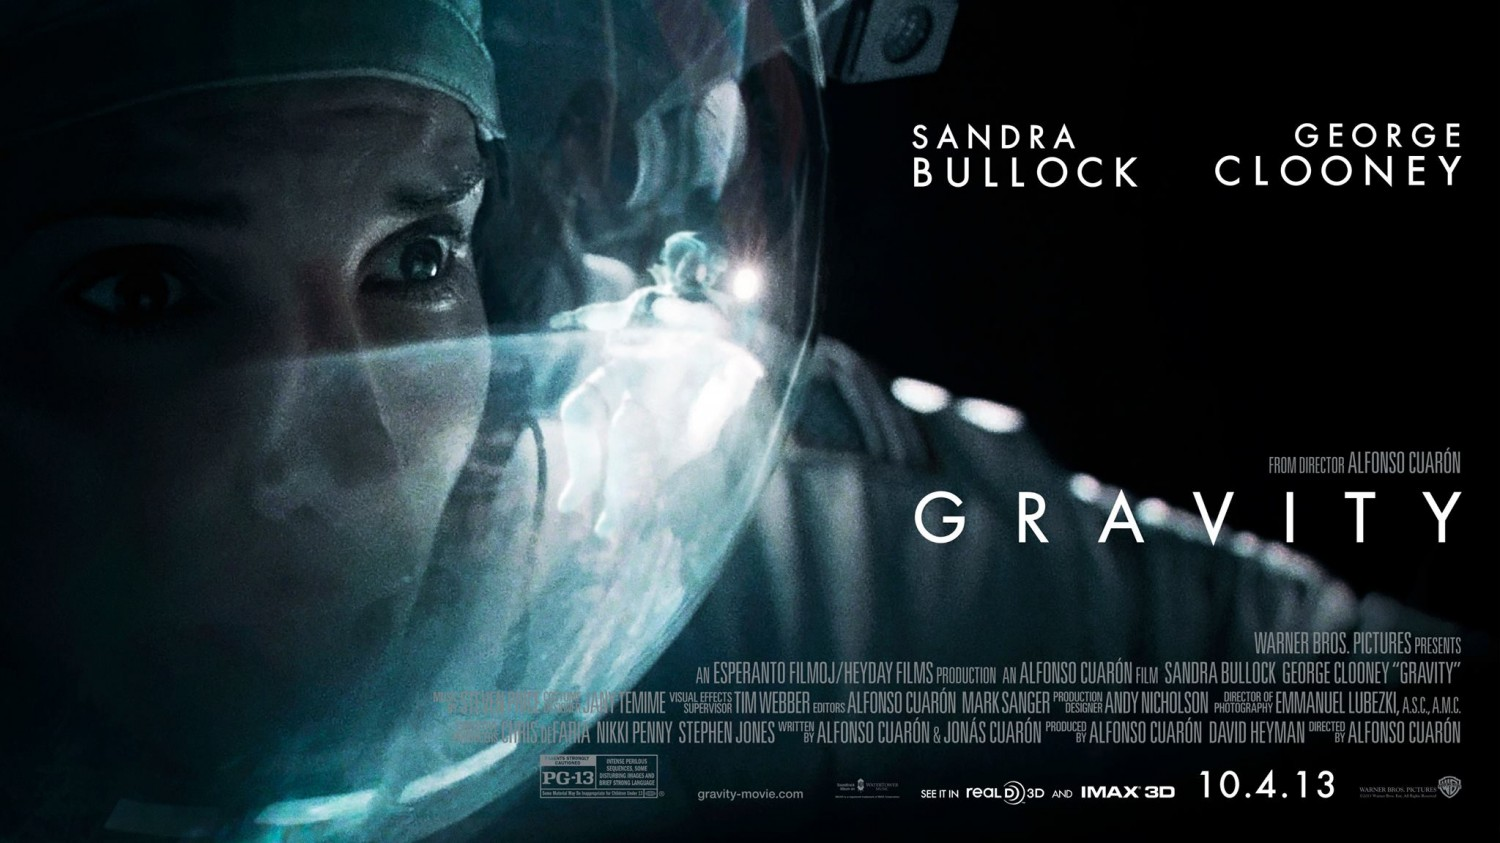 Oscar favourite: The Wolf, Gravity tops Bollywood directors list